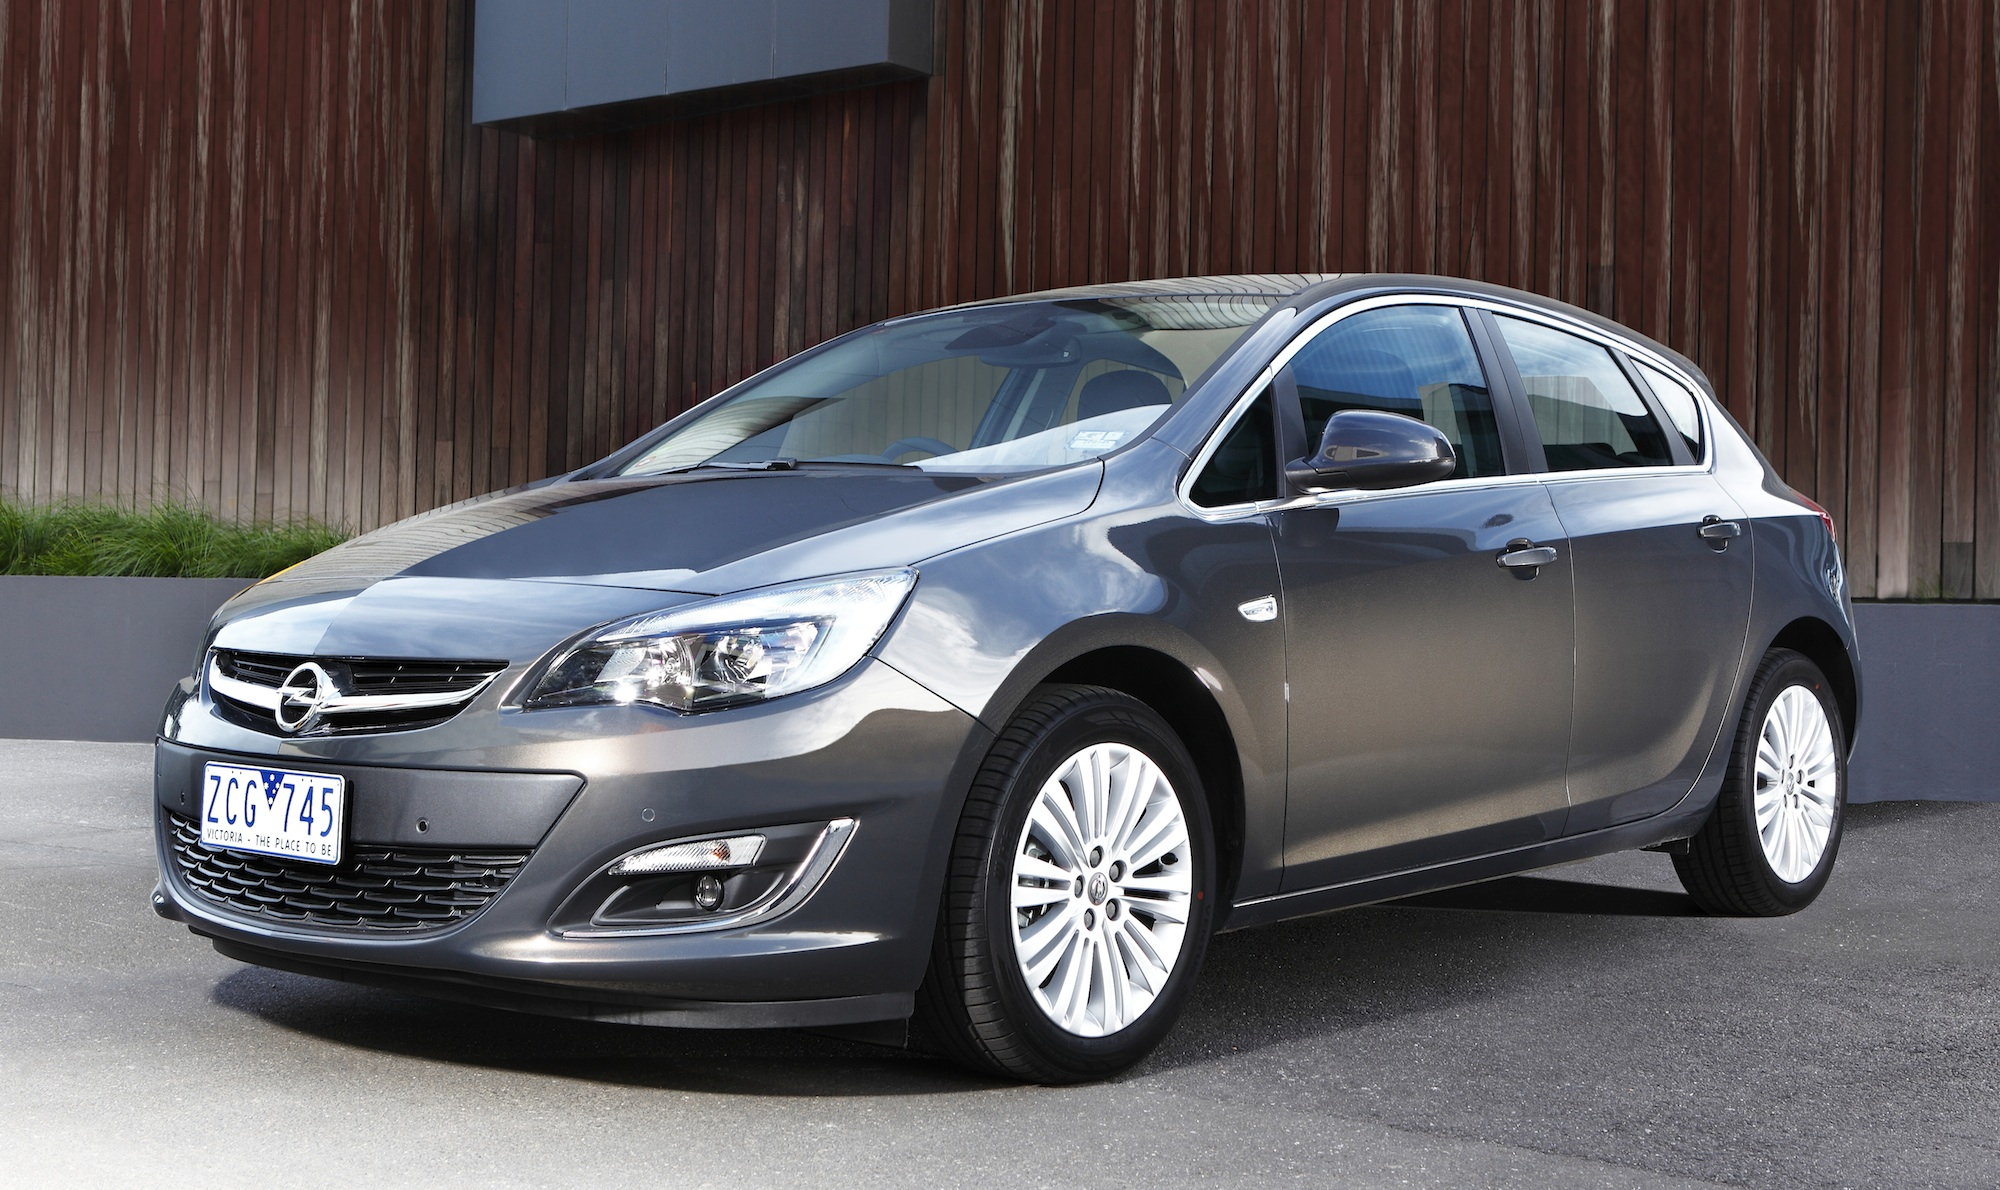 holden astra 2013 pics #4